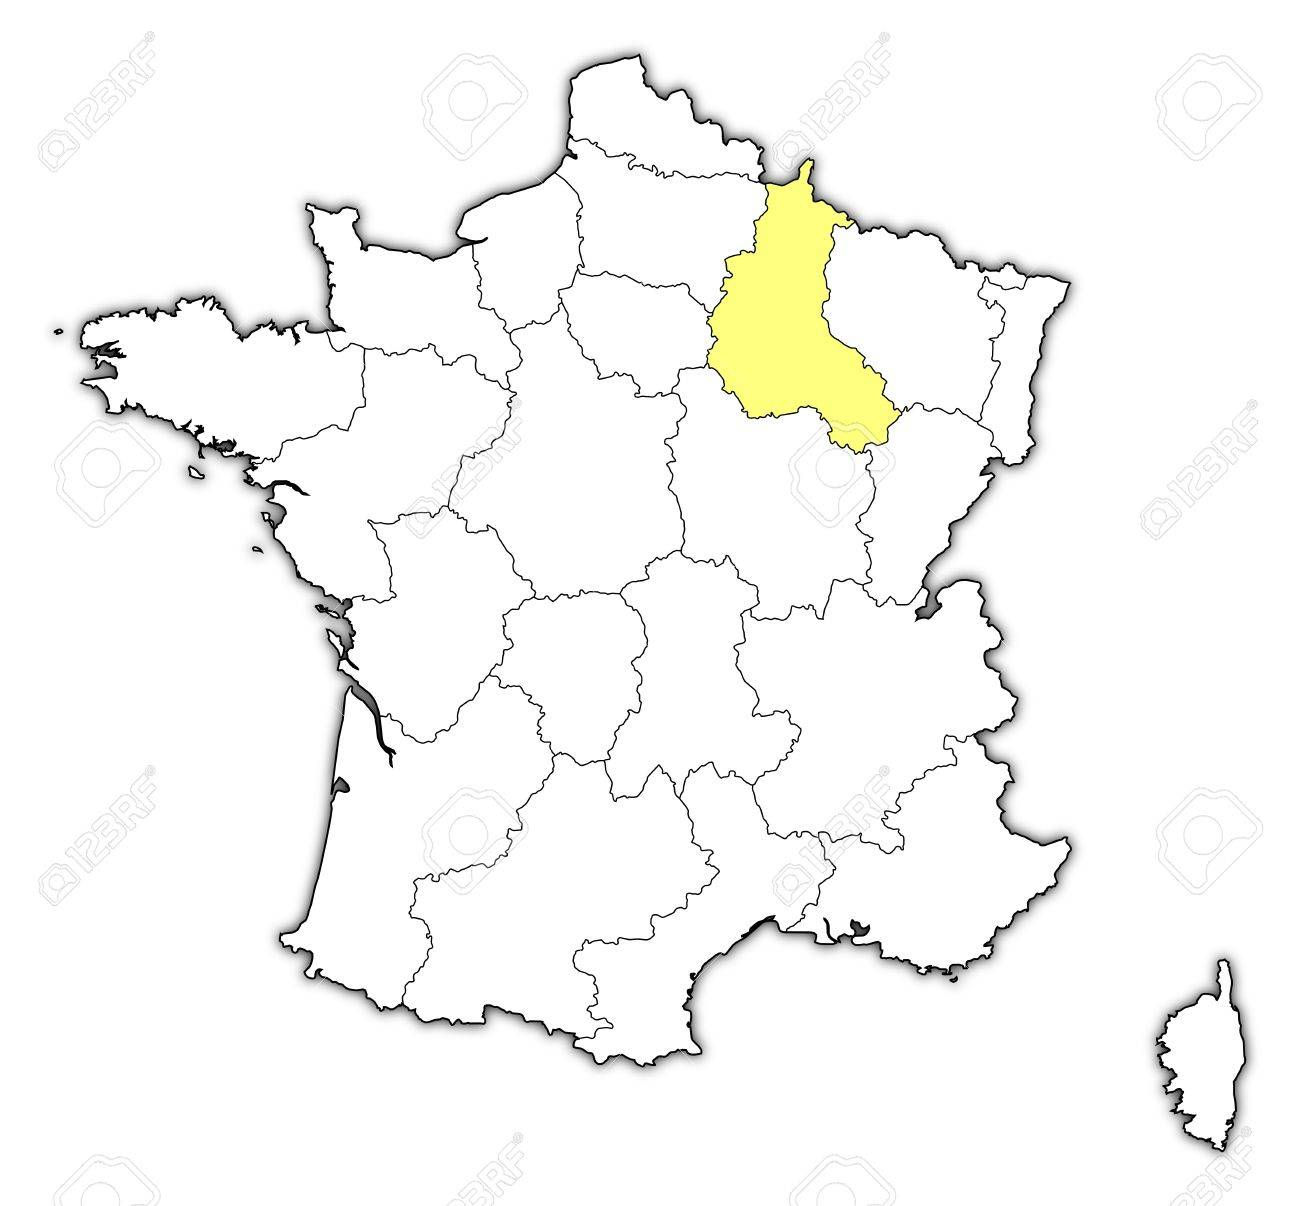 Champagne France Map on